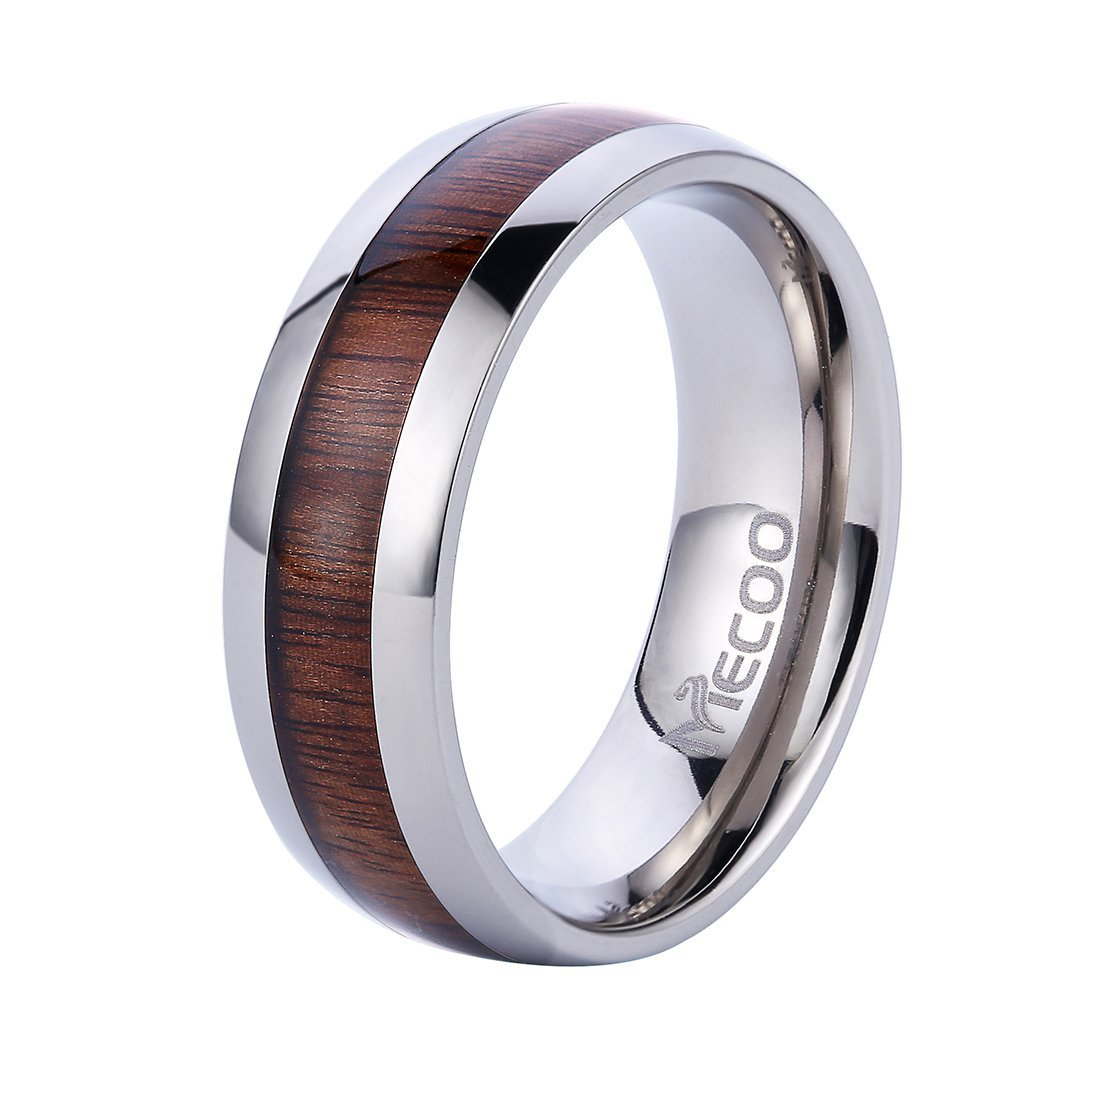 Mecoo Titanium Ring Wedding Band Engagement Ring with Real Wood Inlay Rings for Men 8mm Comfort Fit Size 7 to 13 (10)